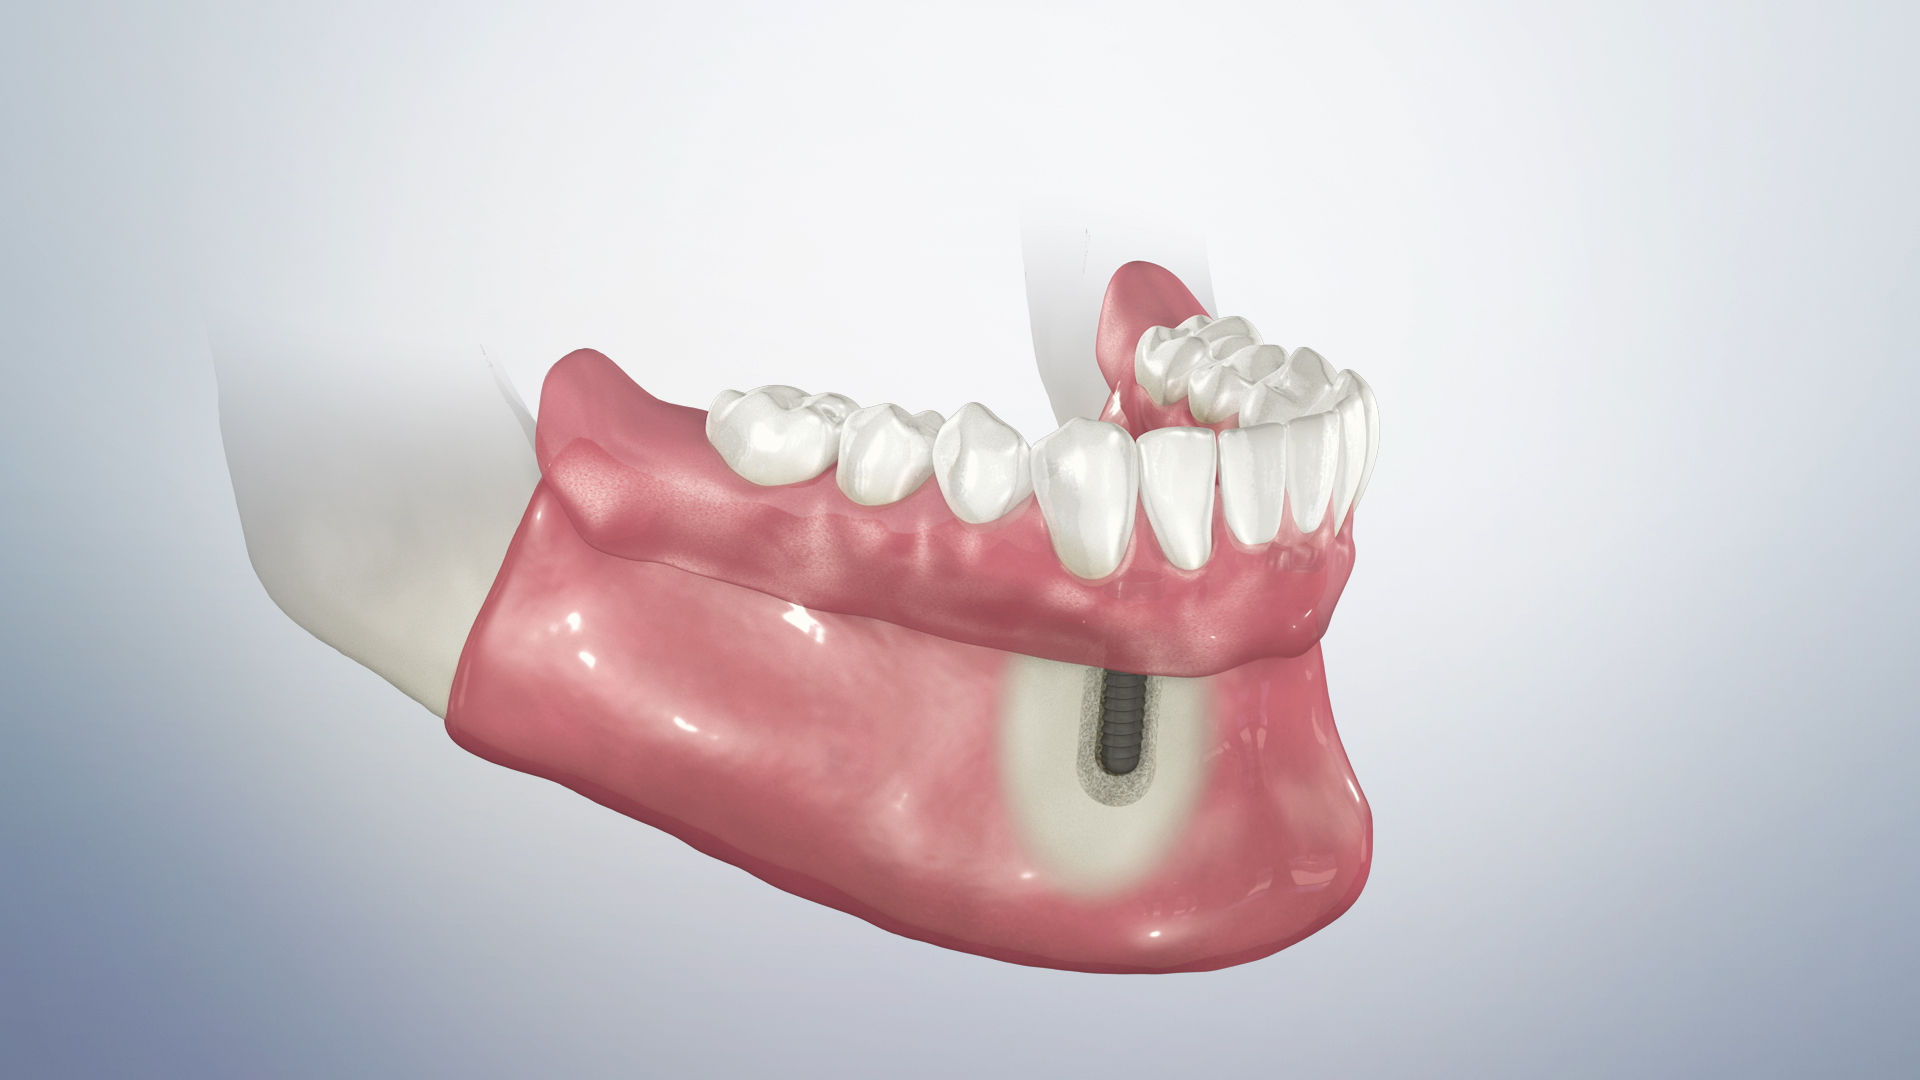 Thumbnail for a video on Locator Retained Overdenture